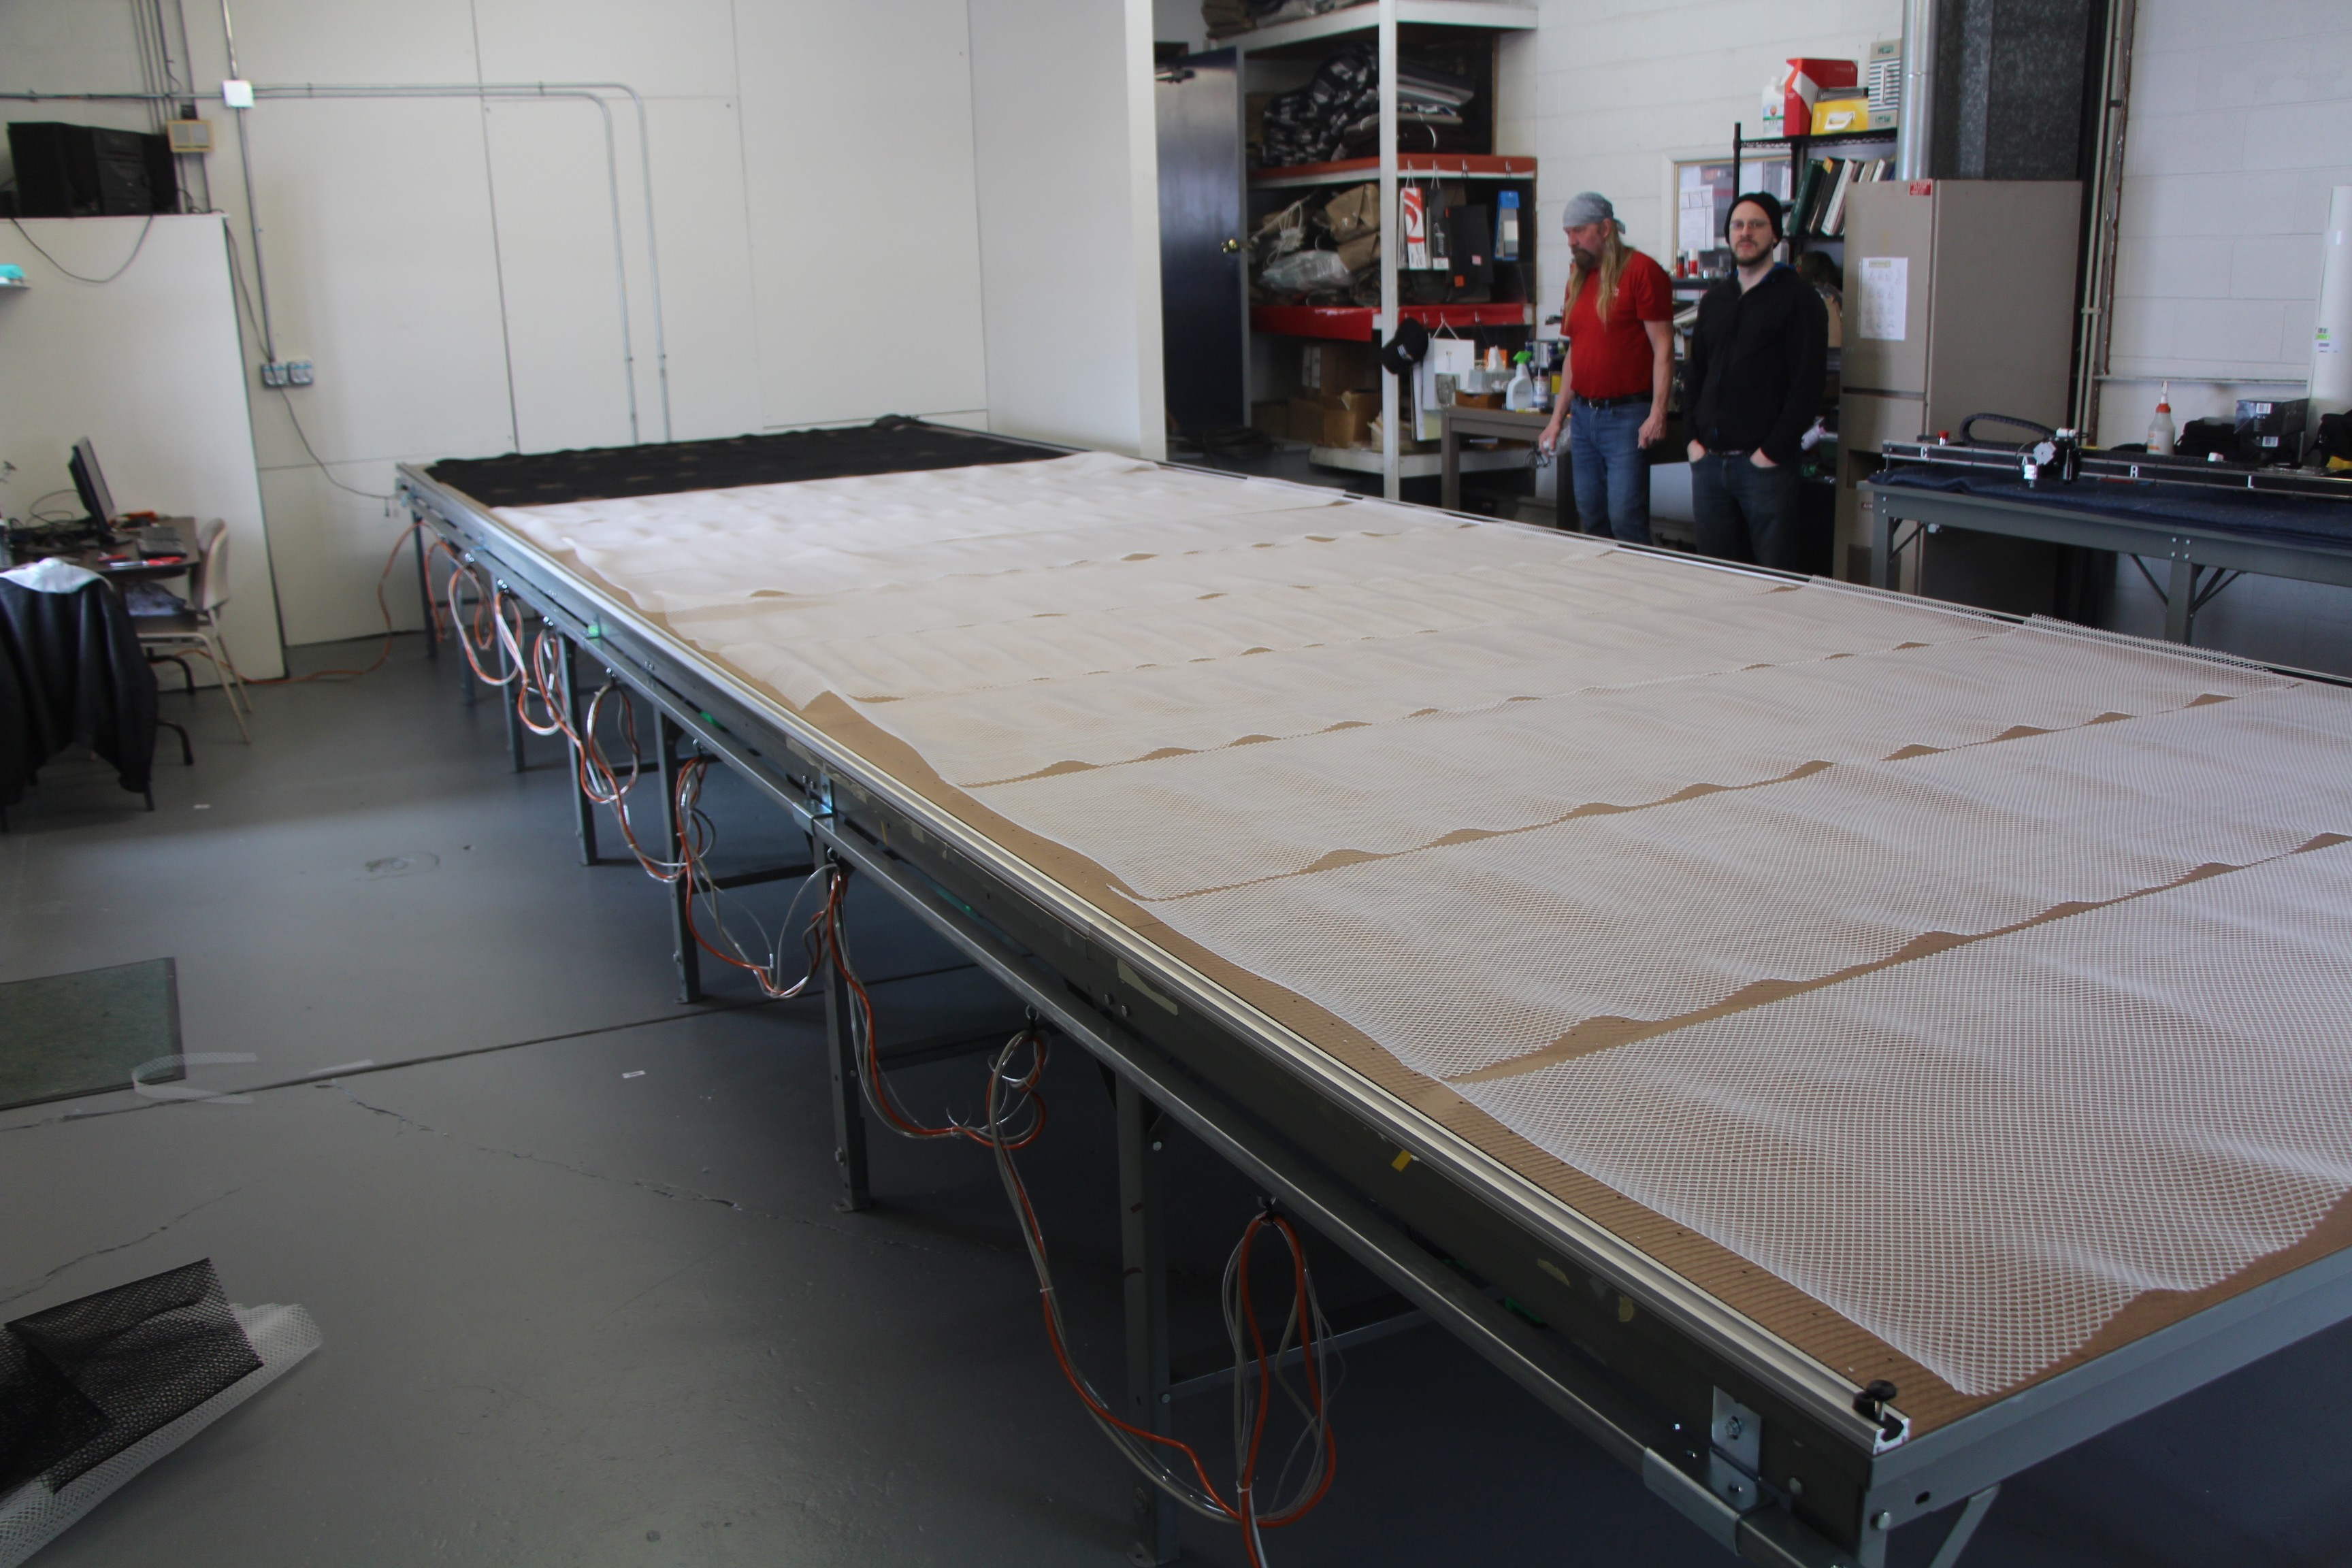 We are now ready for our cutting surface to be laid out and adhered to the table. Mesh is used to create an air gap for air to move across the top of the table surface and below our cutting surface.